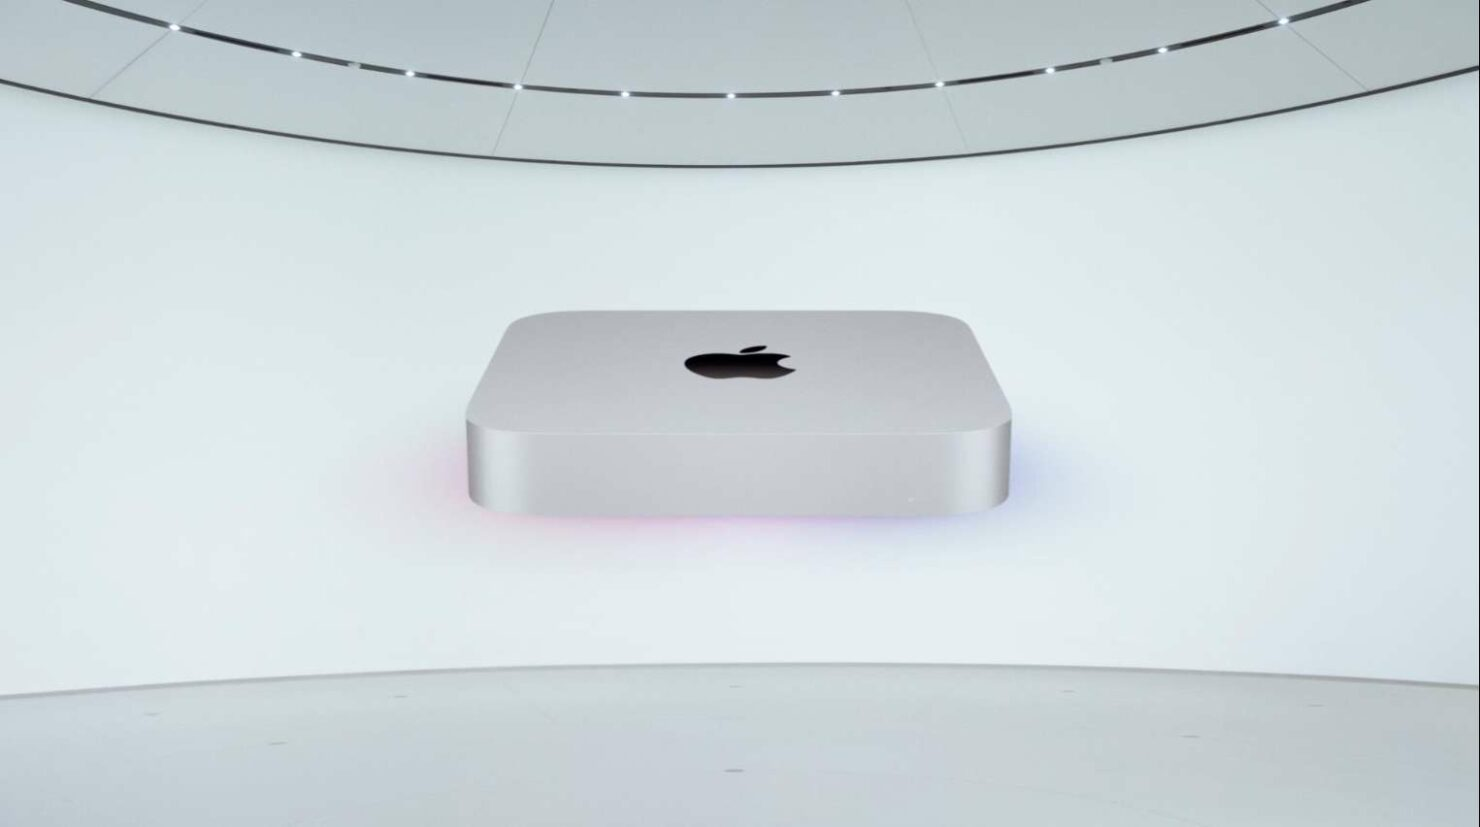 The New Mac mini Comes With Apple's 8-Core M1 Chip, Delivers 3x More CPU Performance, and Only Costs $699